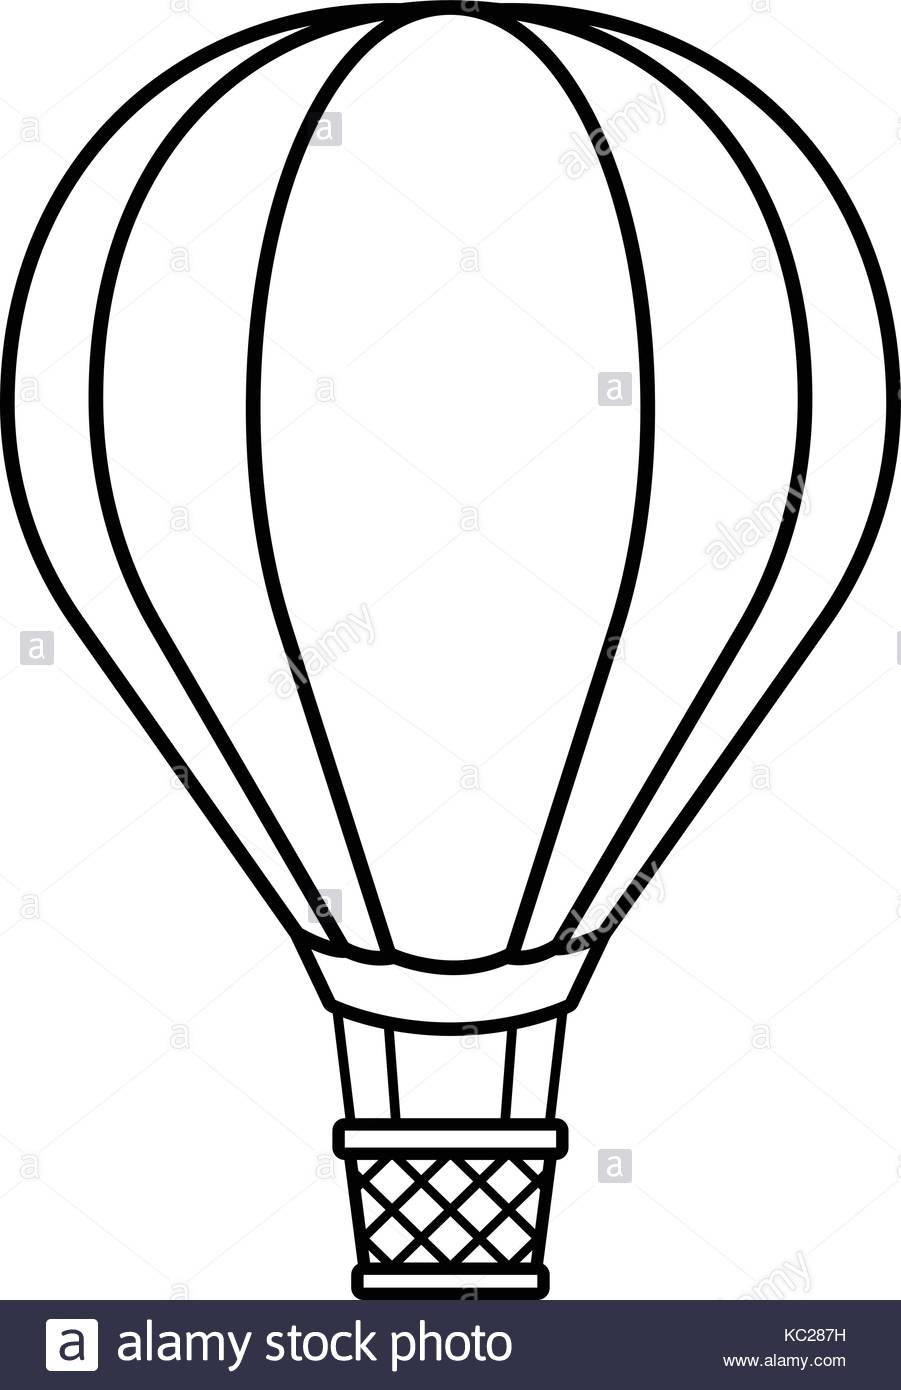 901x1390 Hot Air Balloon Cartoon Black And White Stock Photos Amp Images